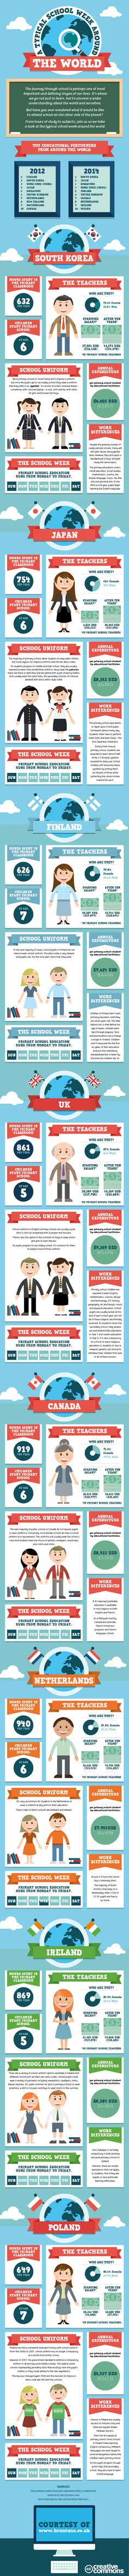 A Typical School Week Around The World #Infographic #Education